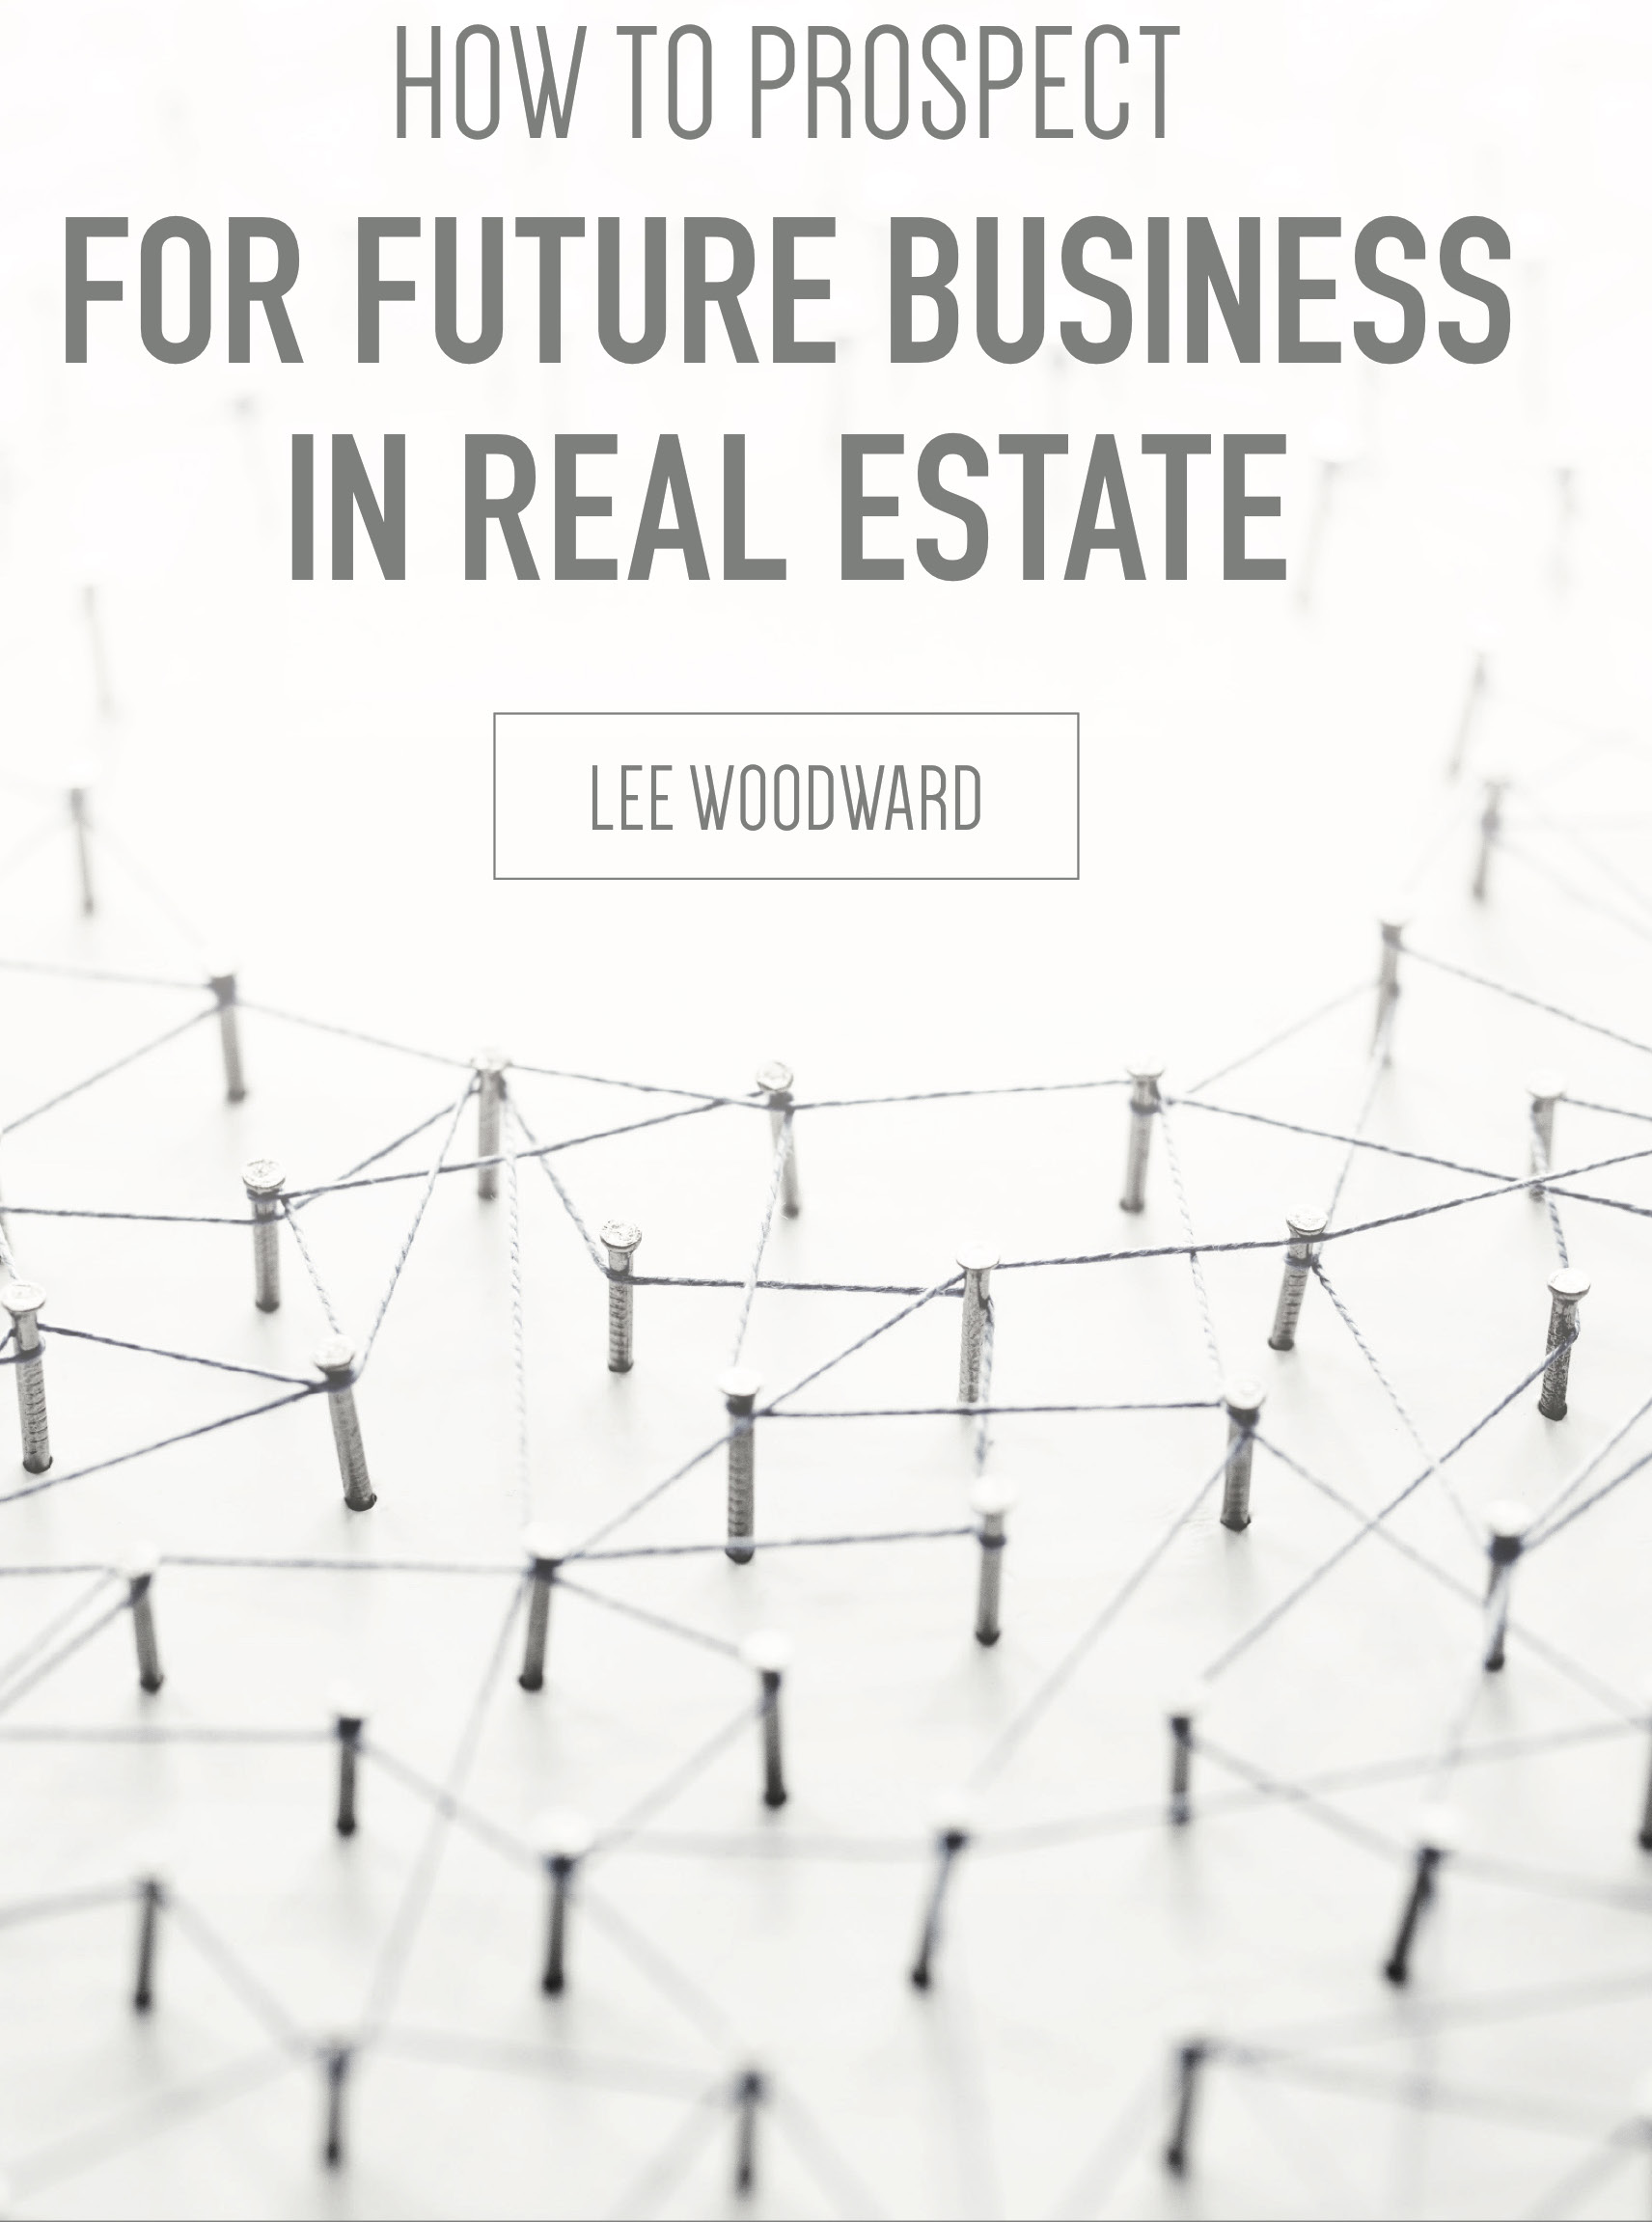 How to Prospect for Future Business in Real Estate by Lee Woodward